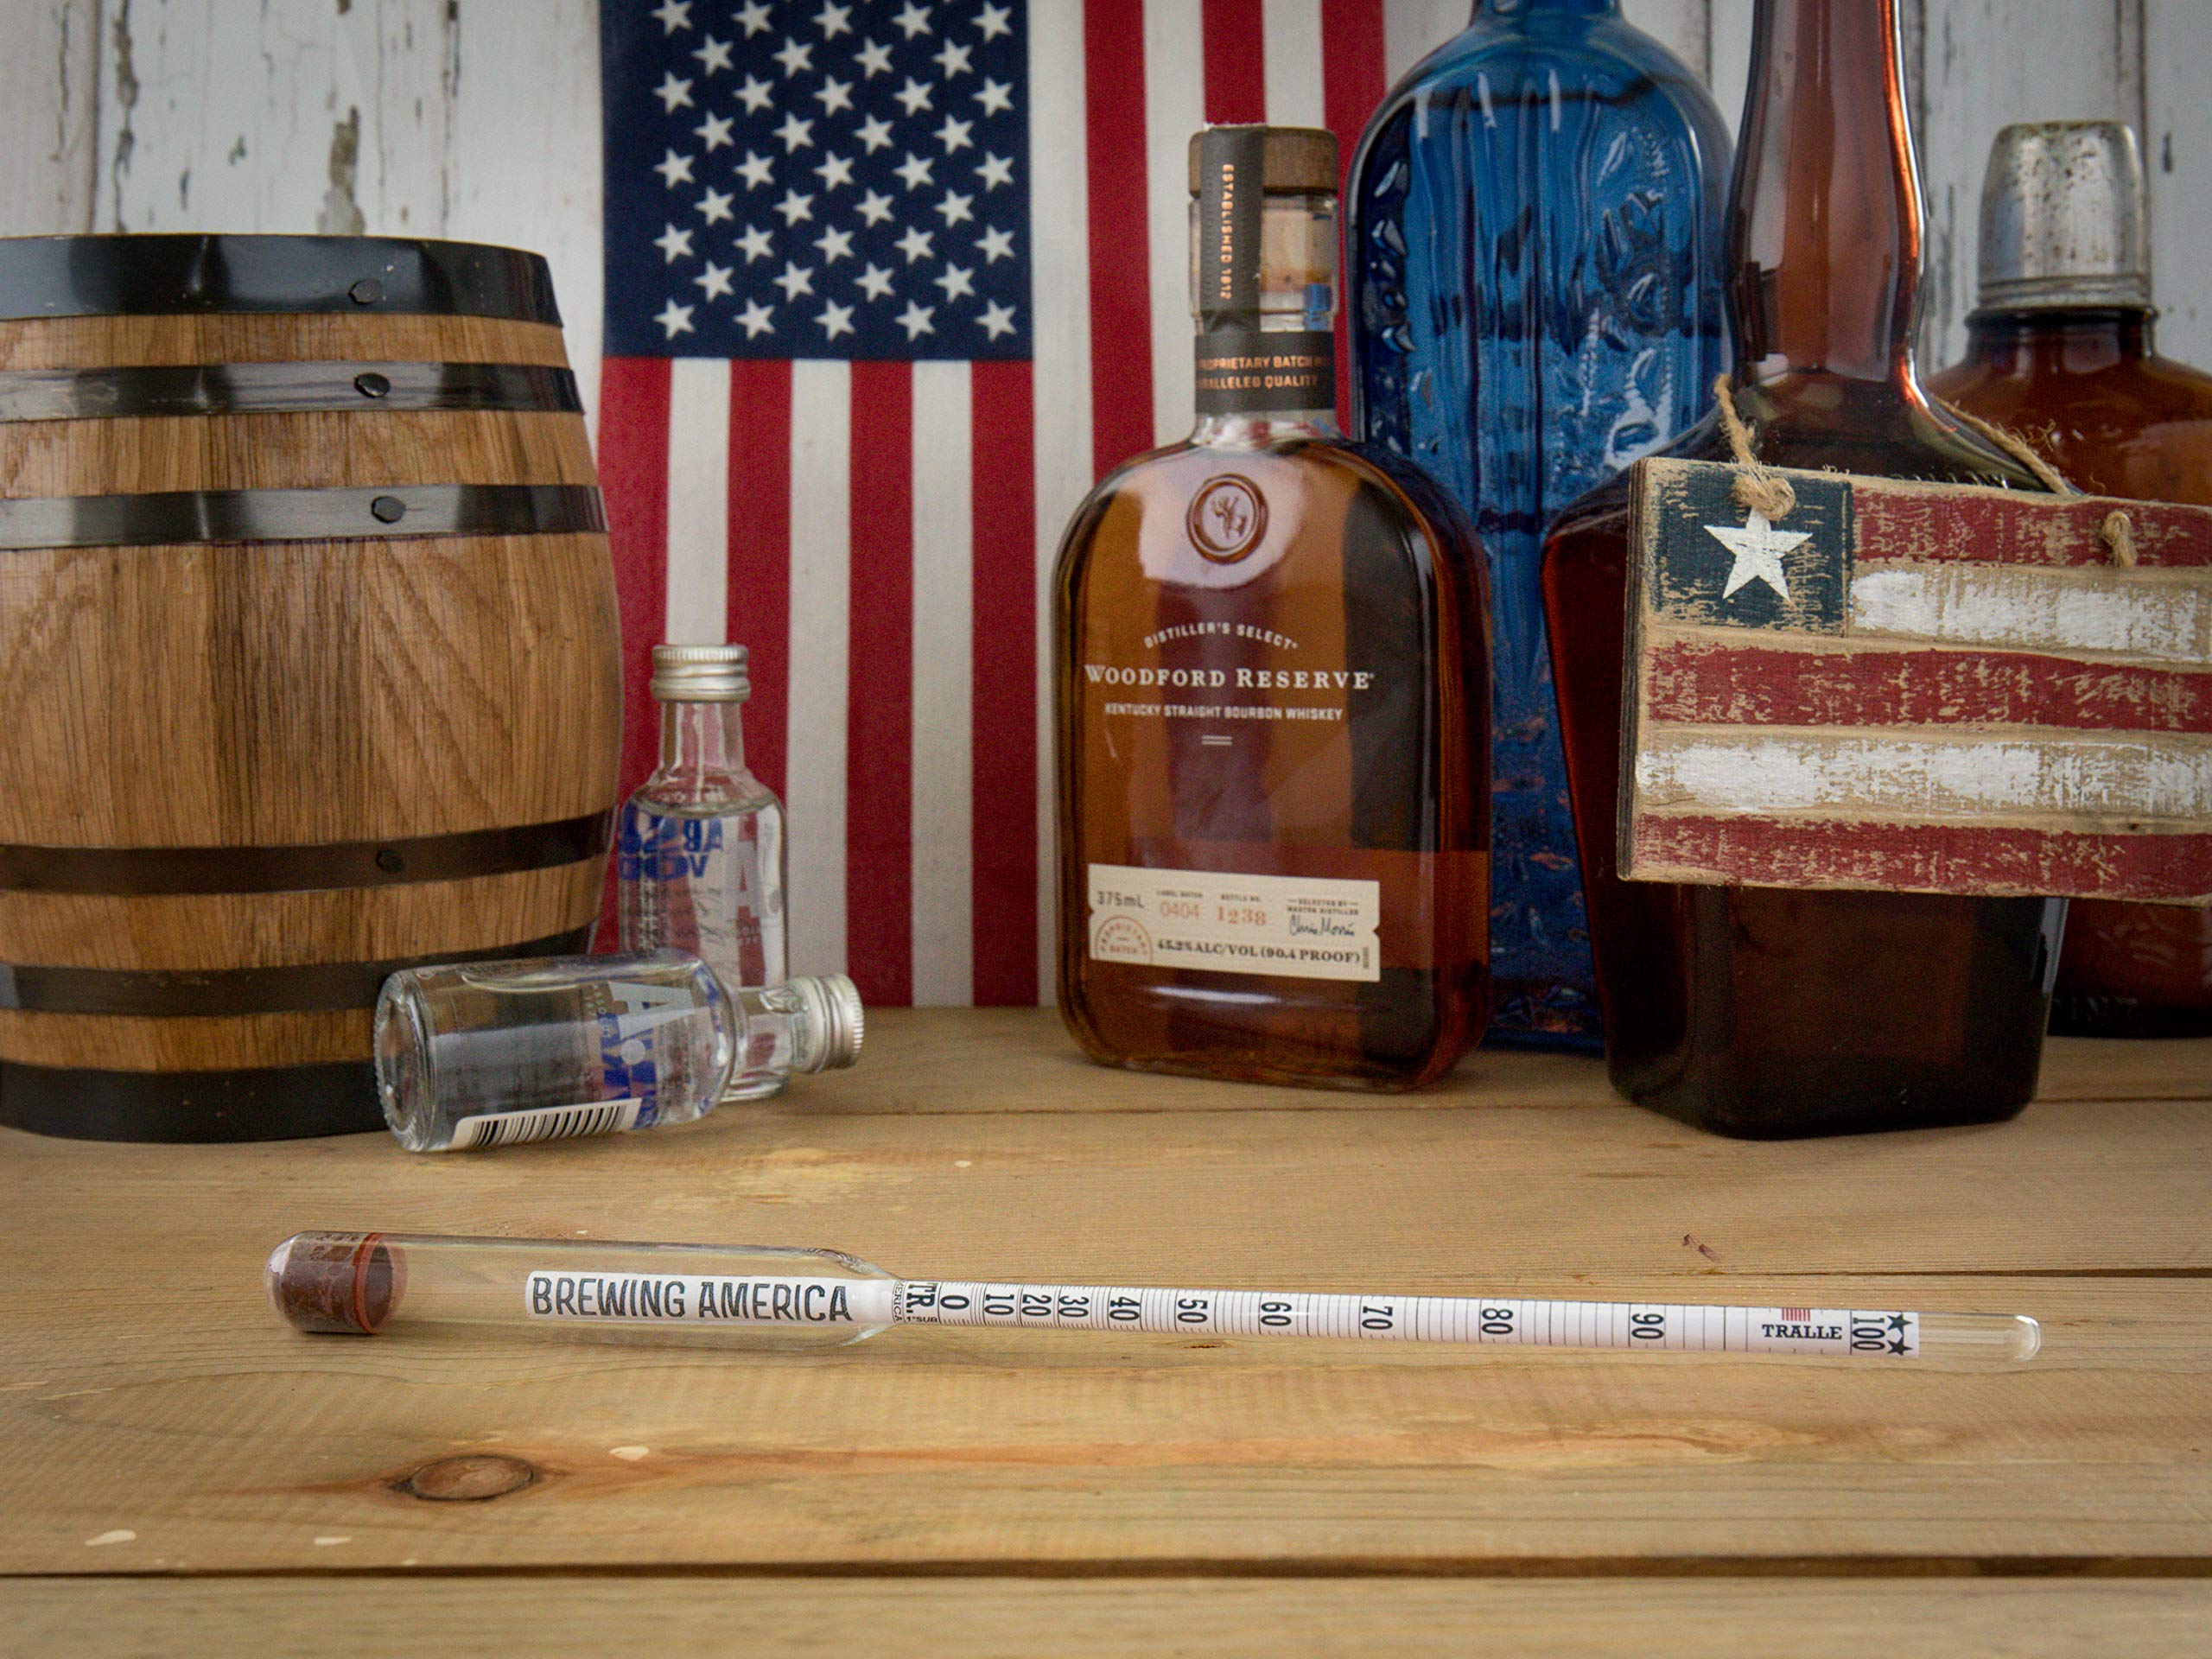 American-made Alcohol Hydrometer Tester 0-200 Proof & Tralle Pro Series Traceable - Distilling Moonshine Alcoholmeter by Brewing America (Image #5)